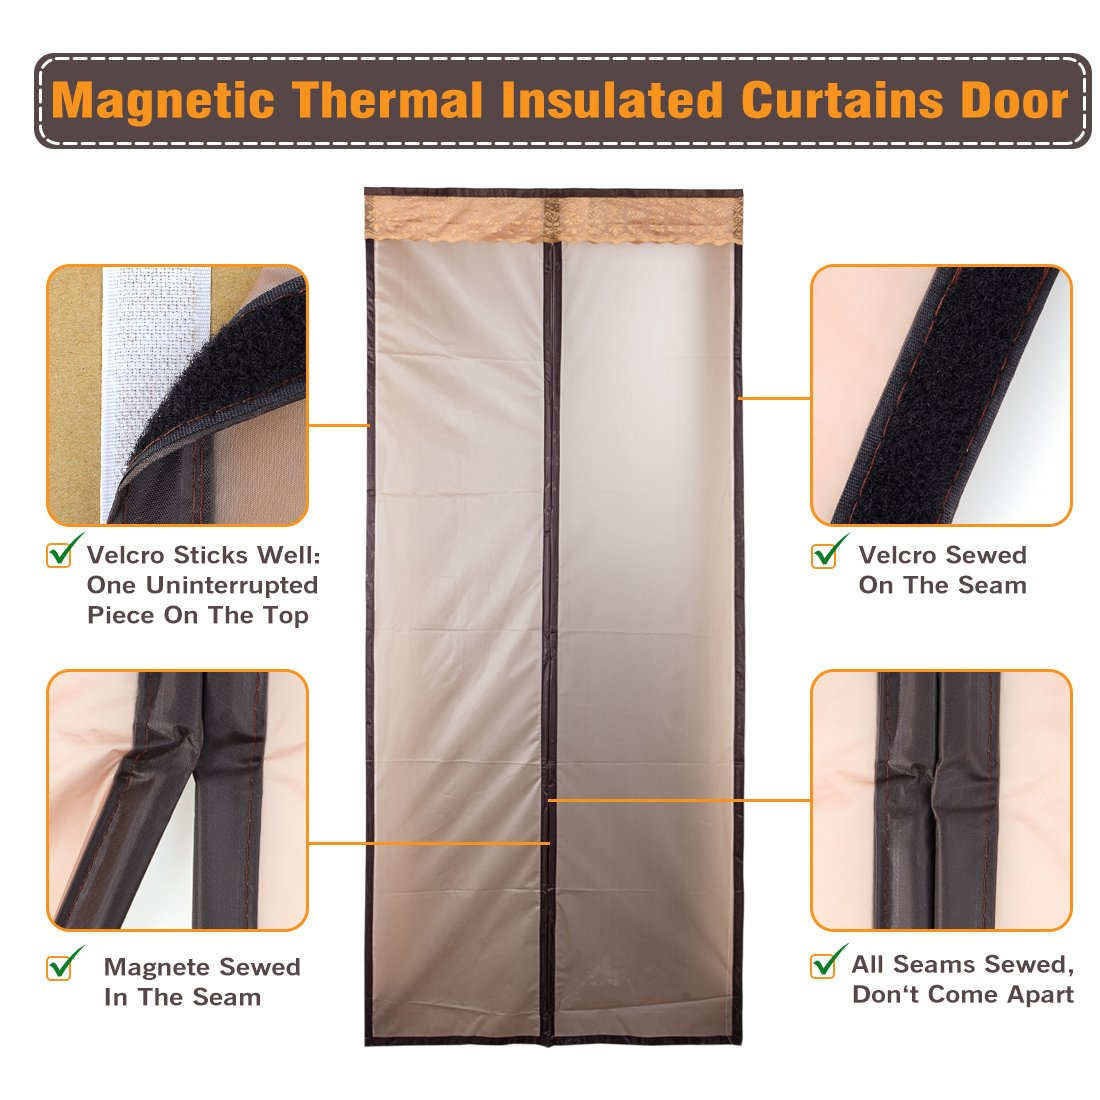 Magnetic thermal insulated door curtain enjoy your cool summer and magnetic thermal insulated door curtain enjoy your cool summer and warm winter with saving you money door curtain auto closer fits doors up to 46 x 82 max rubansaba